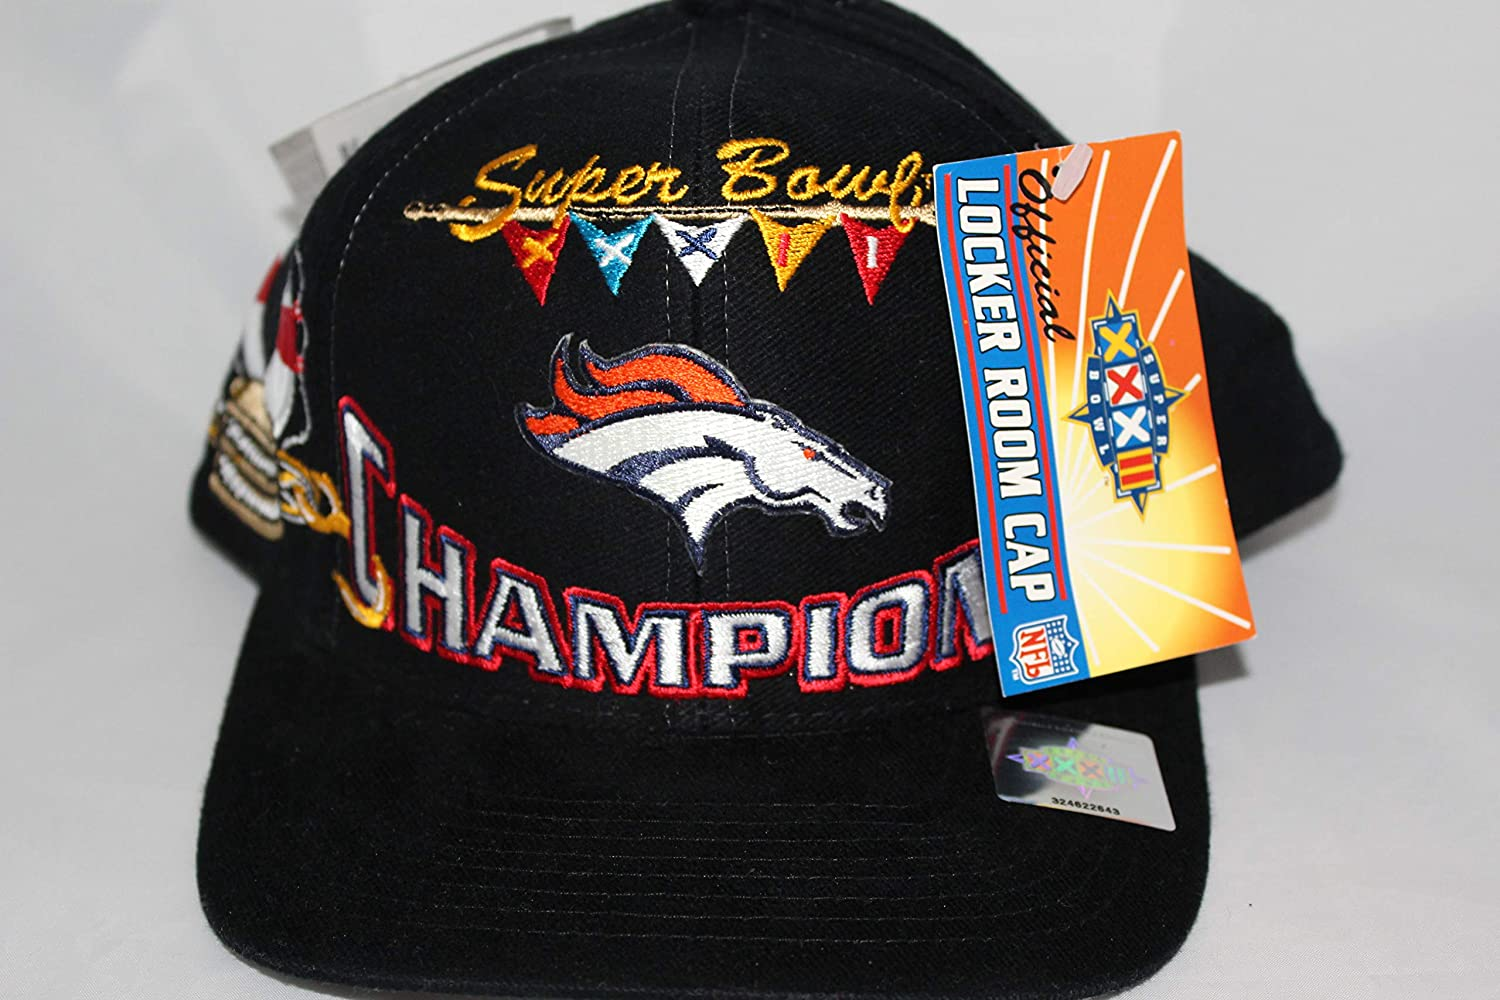 Nfl Vintage Collection Denver Broncos Snapback Hat Leather Black And Orange Fan Apparel & Souvenirs